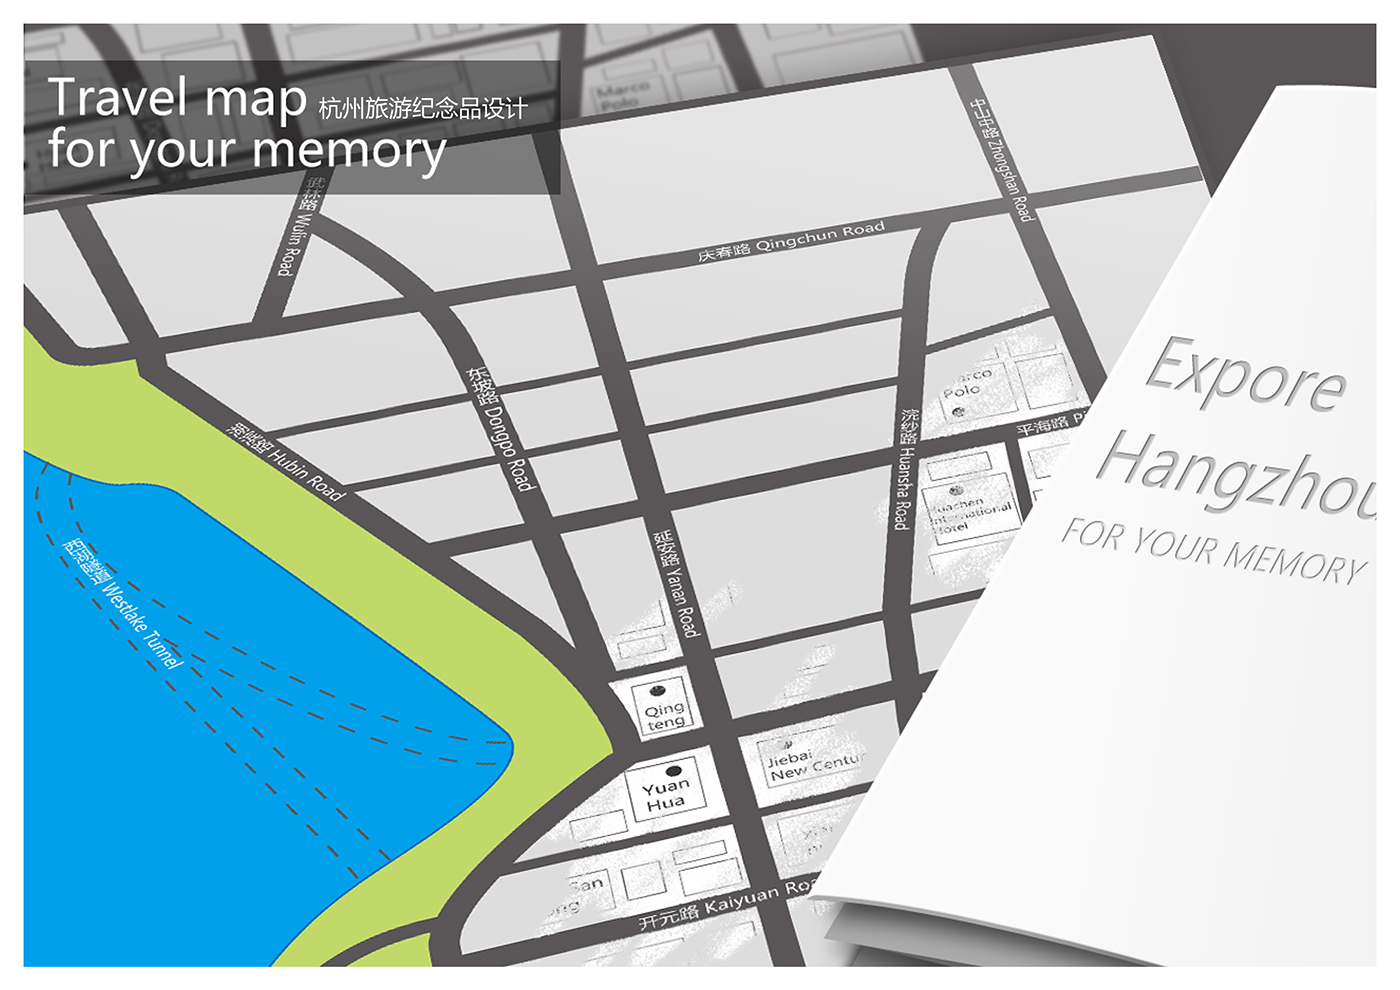 Explore Hangzhou—Travel map for your memory